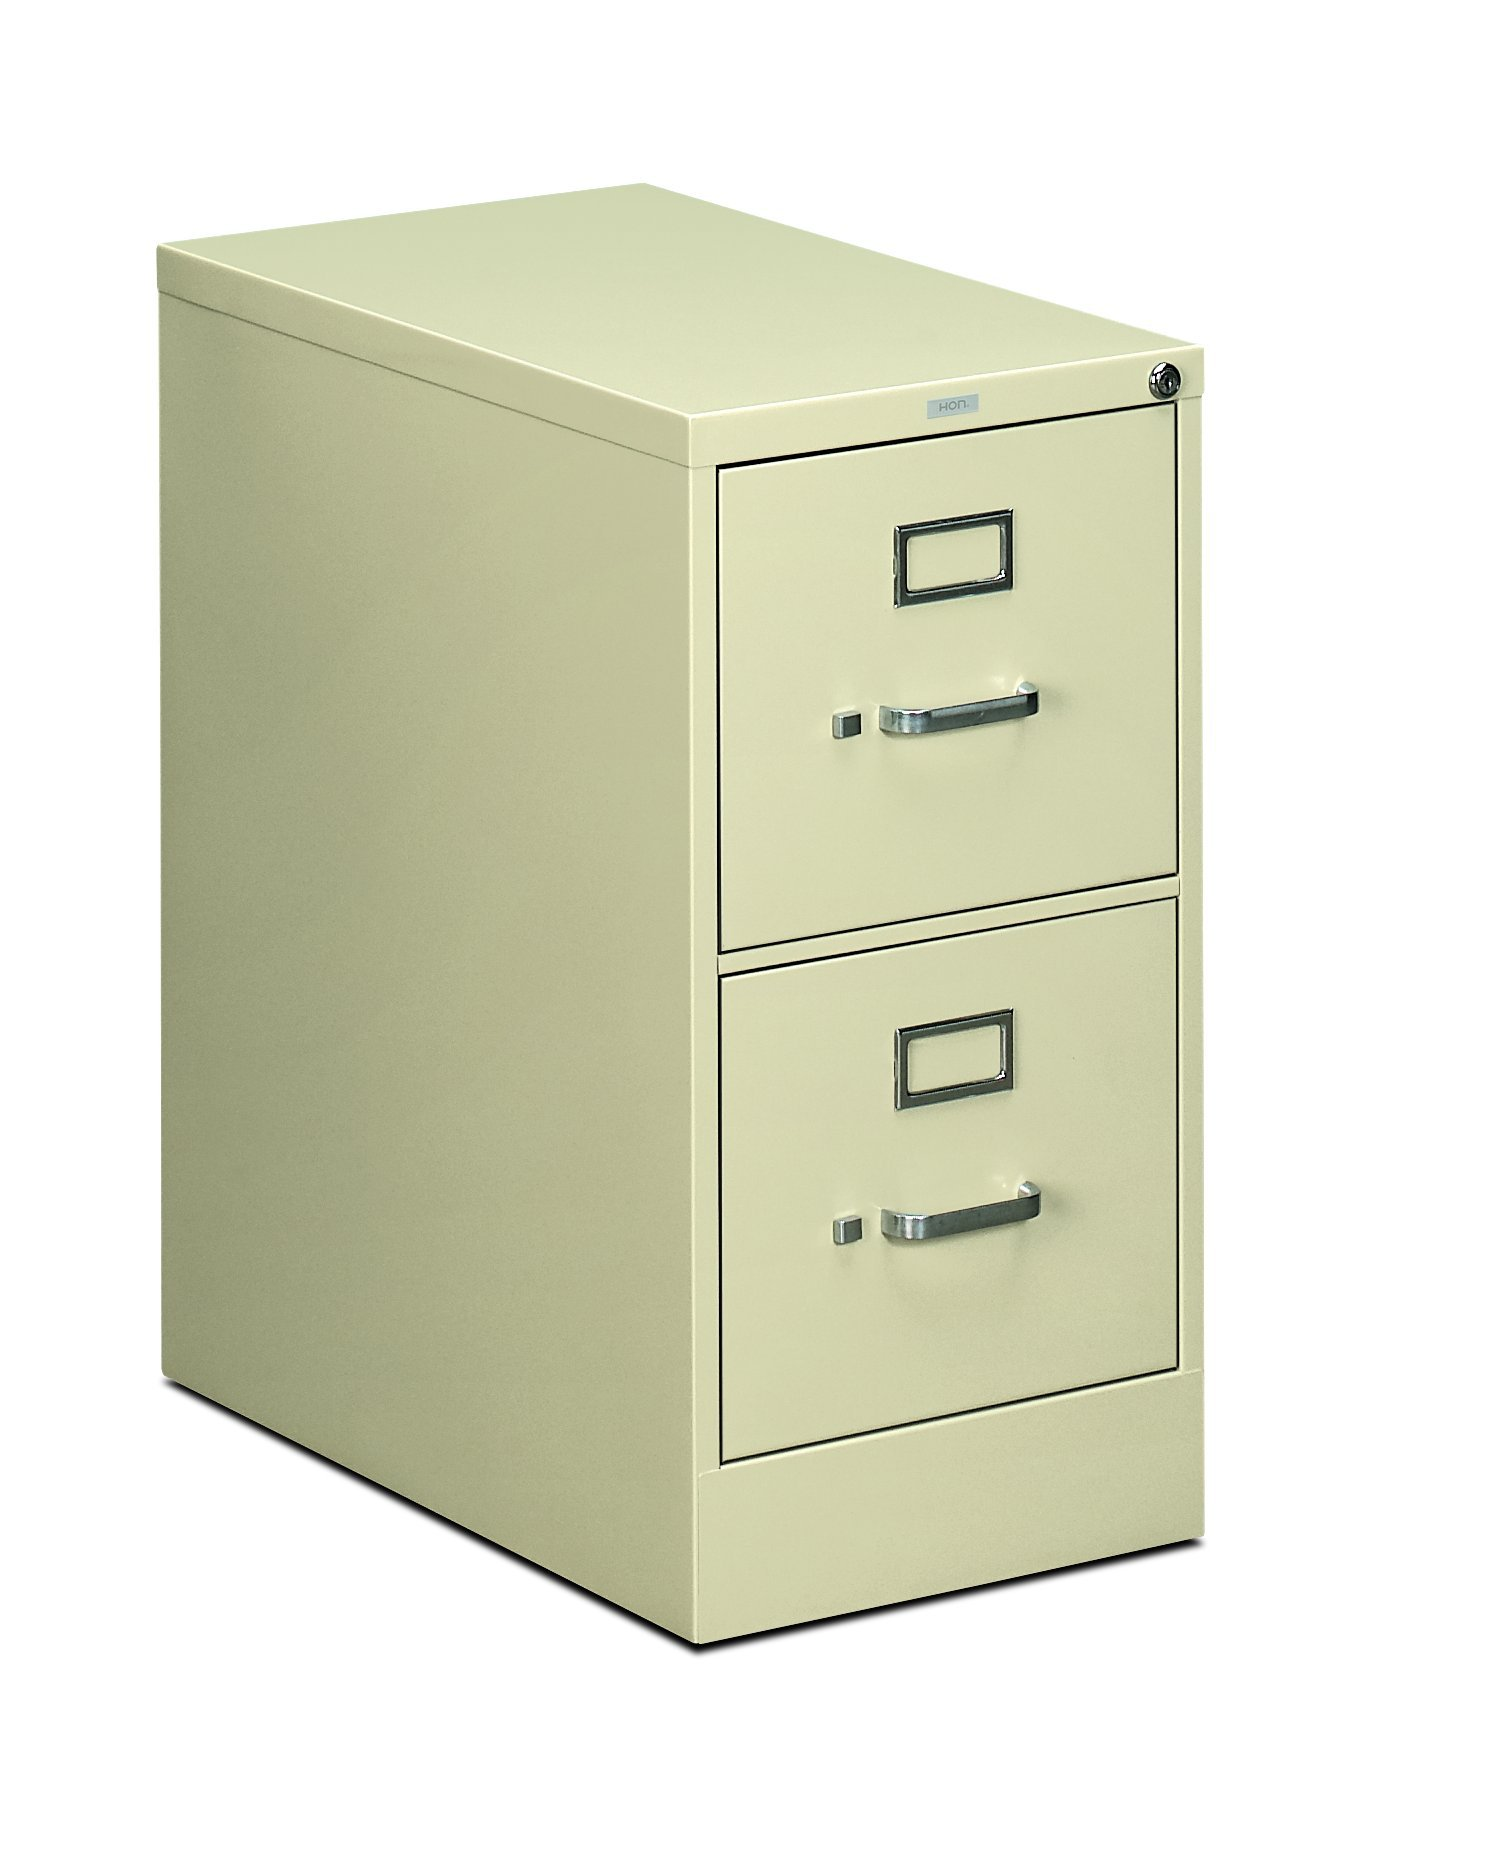 HON Two-Drawer Filing Cabinet- 510 Series Full Suspension Letter File Cabinet, 29 by 15-inch, Putty (H512) by HON